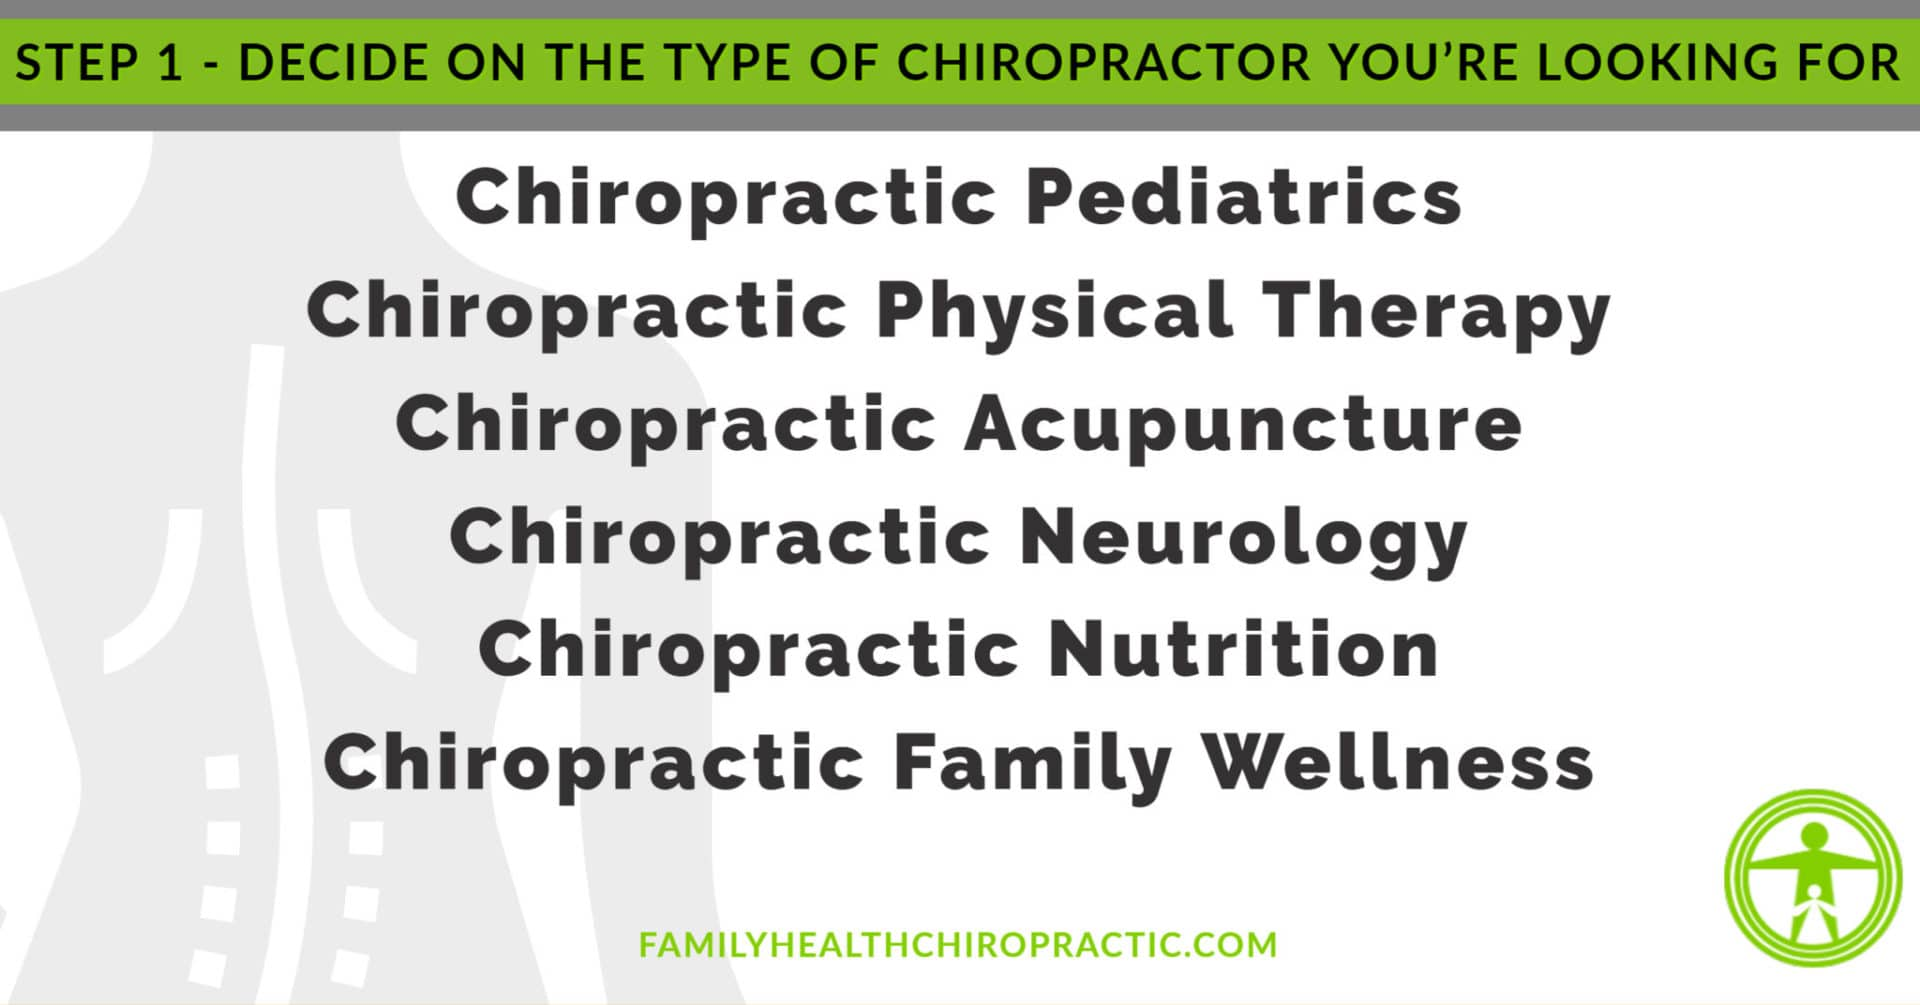 what type of chiropractic are you looking for